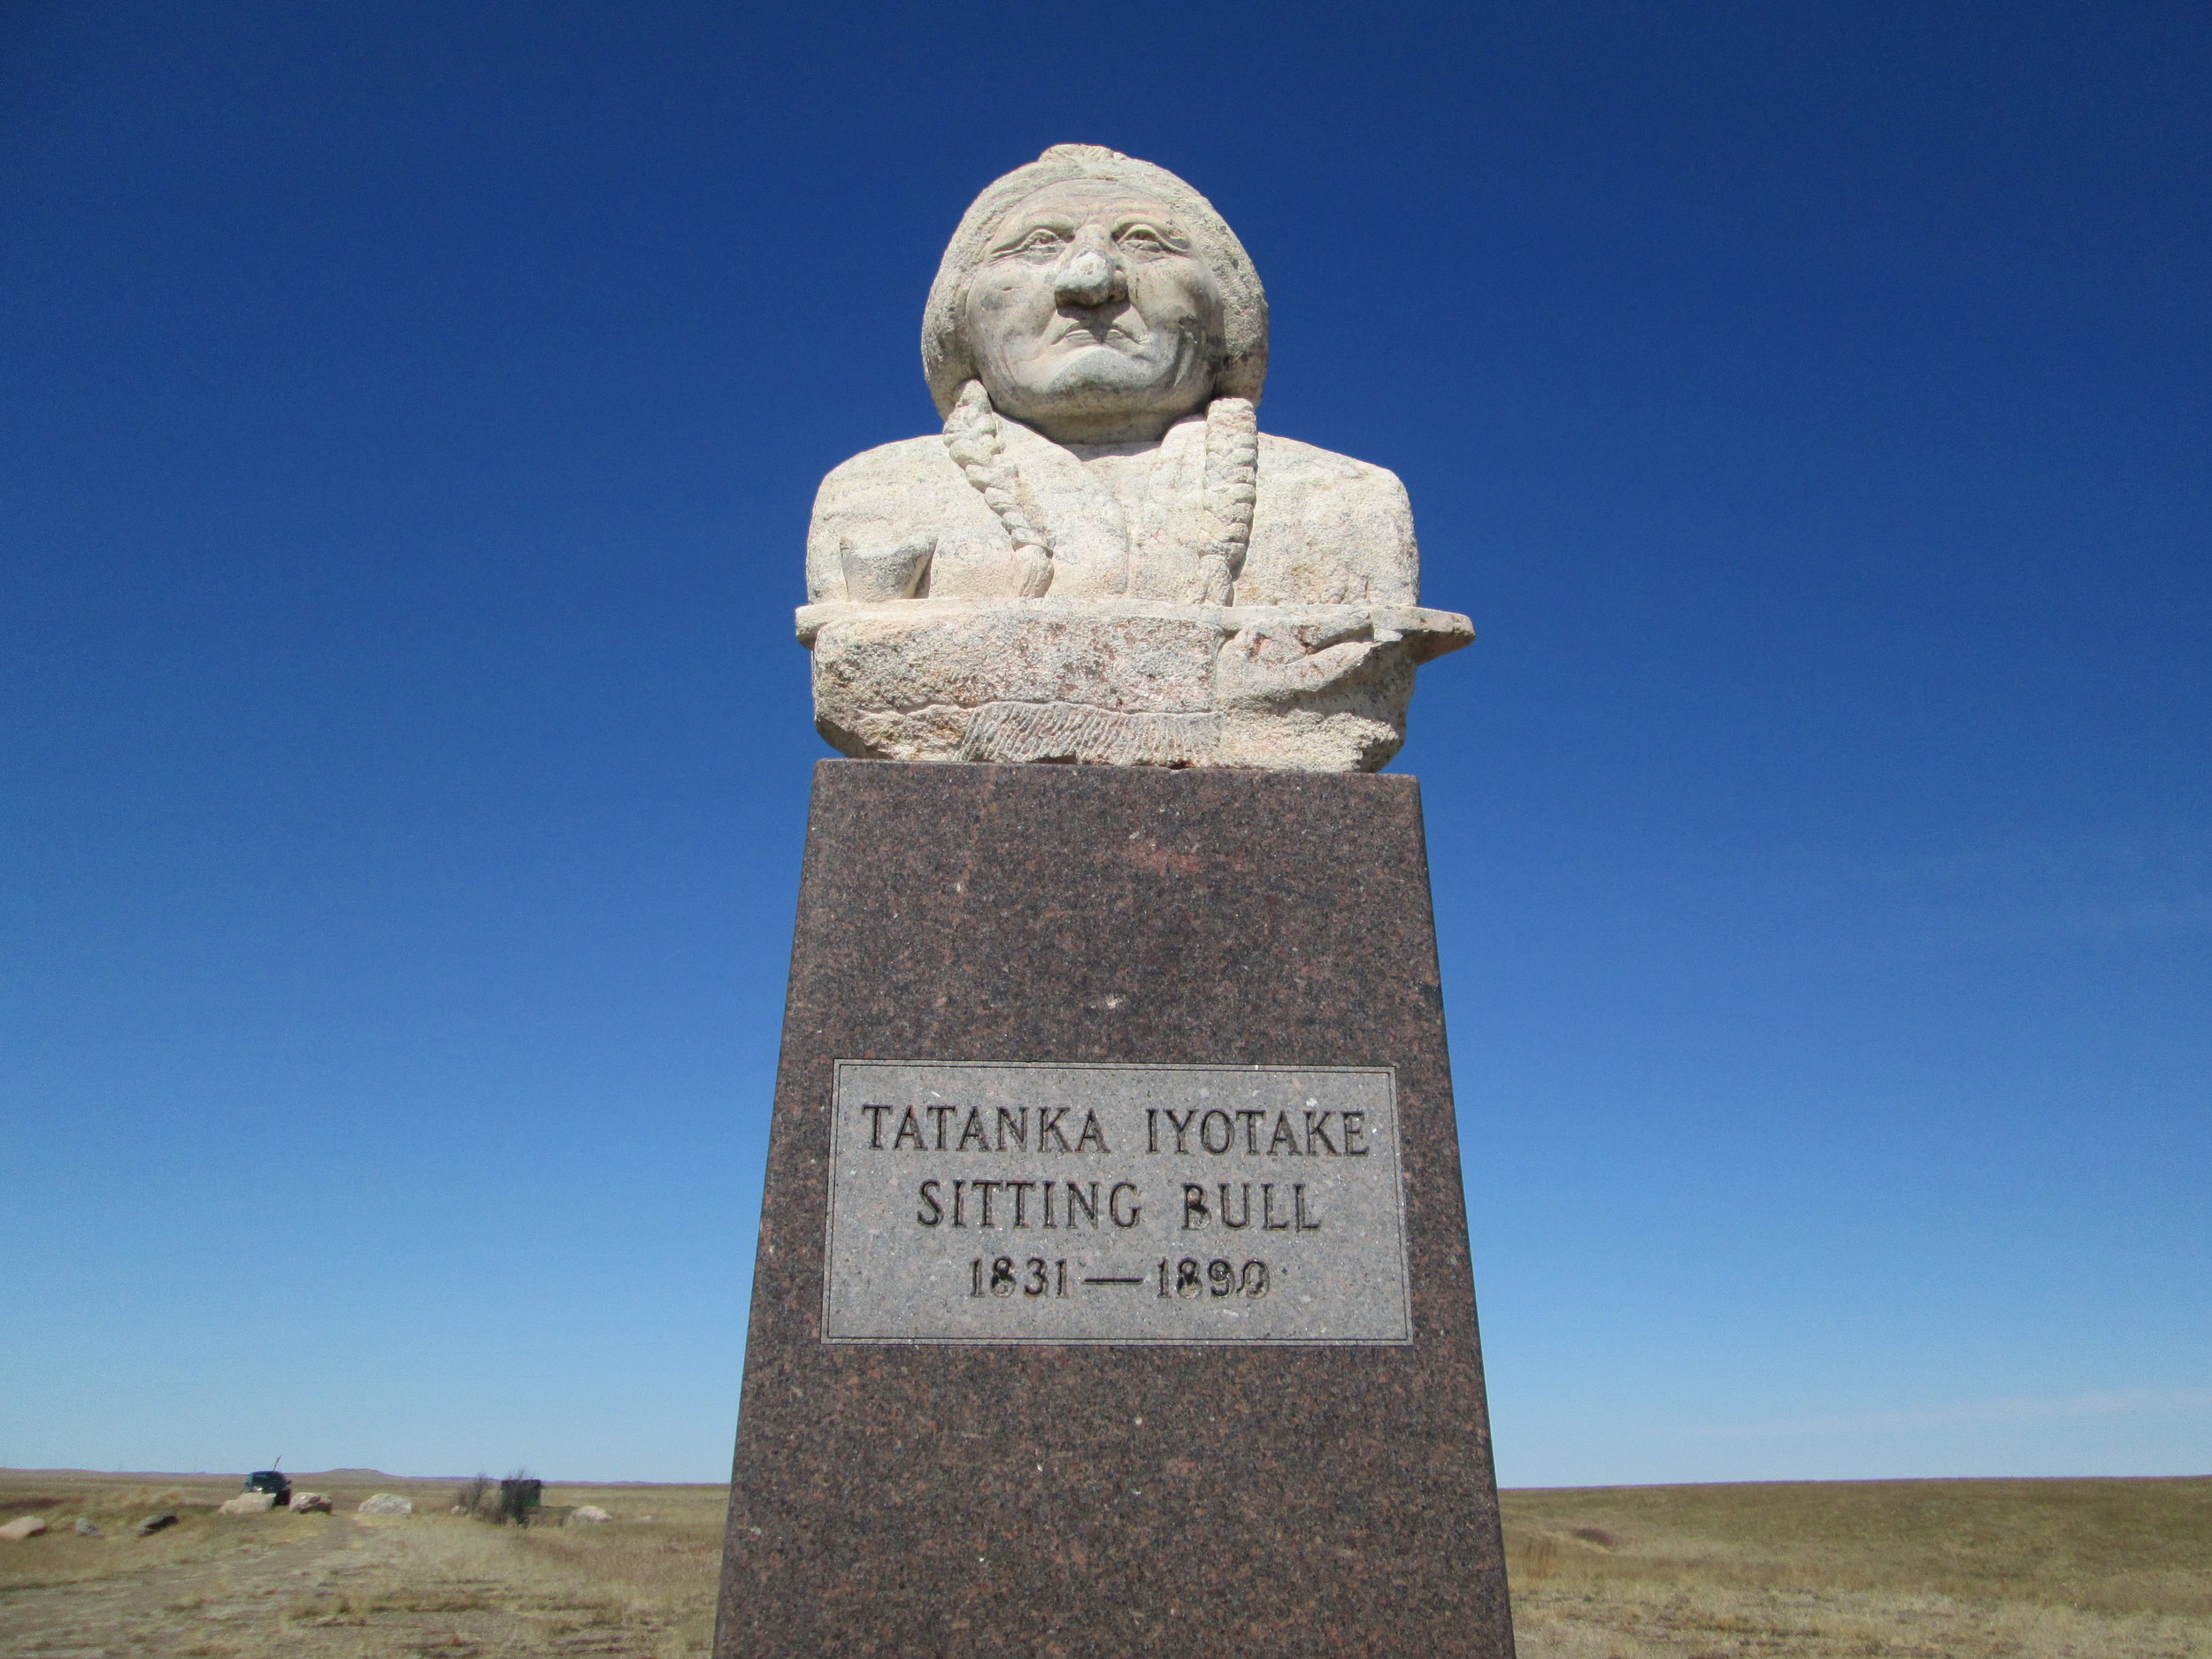 Sitting Bull Monument in Mobridge, South Dakota. Mobridge is a modern town adjacent to Standing Rock.